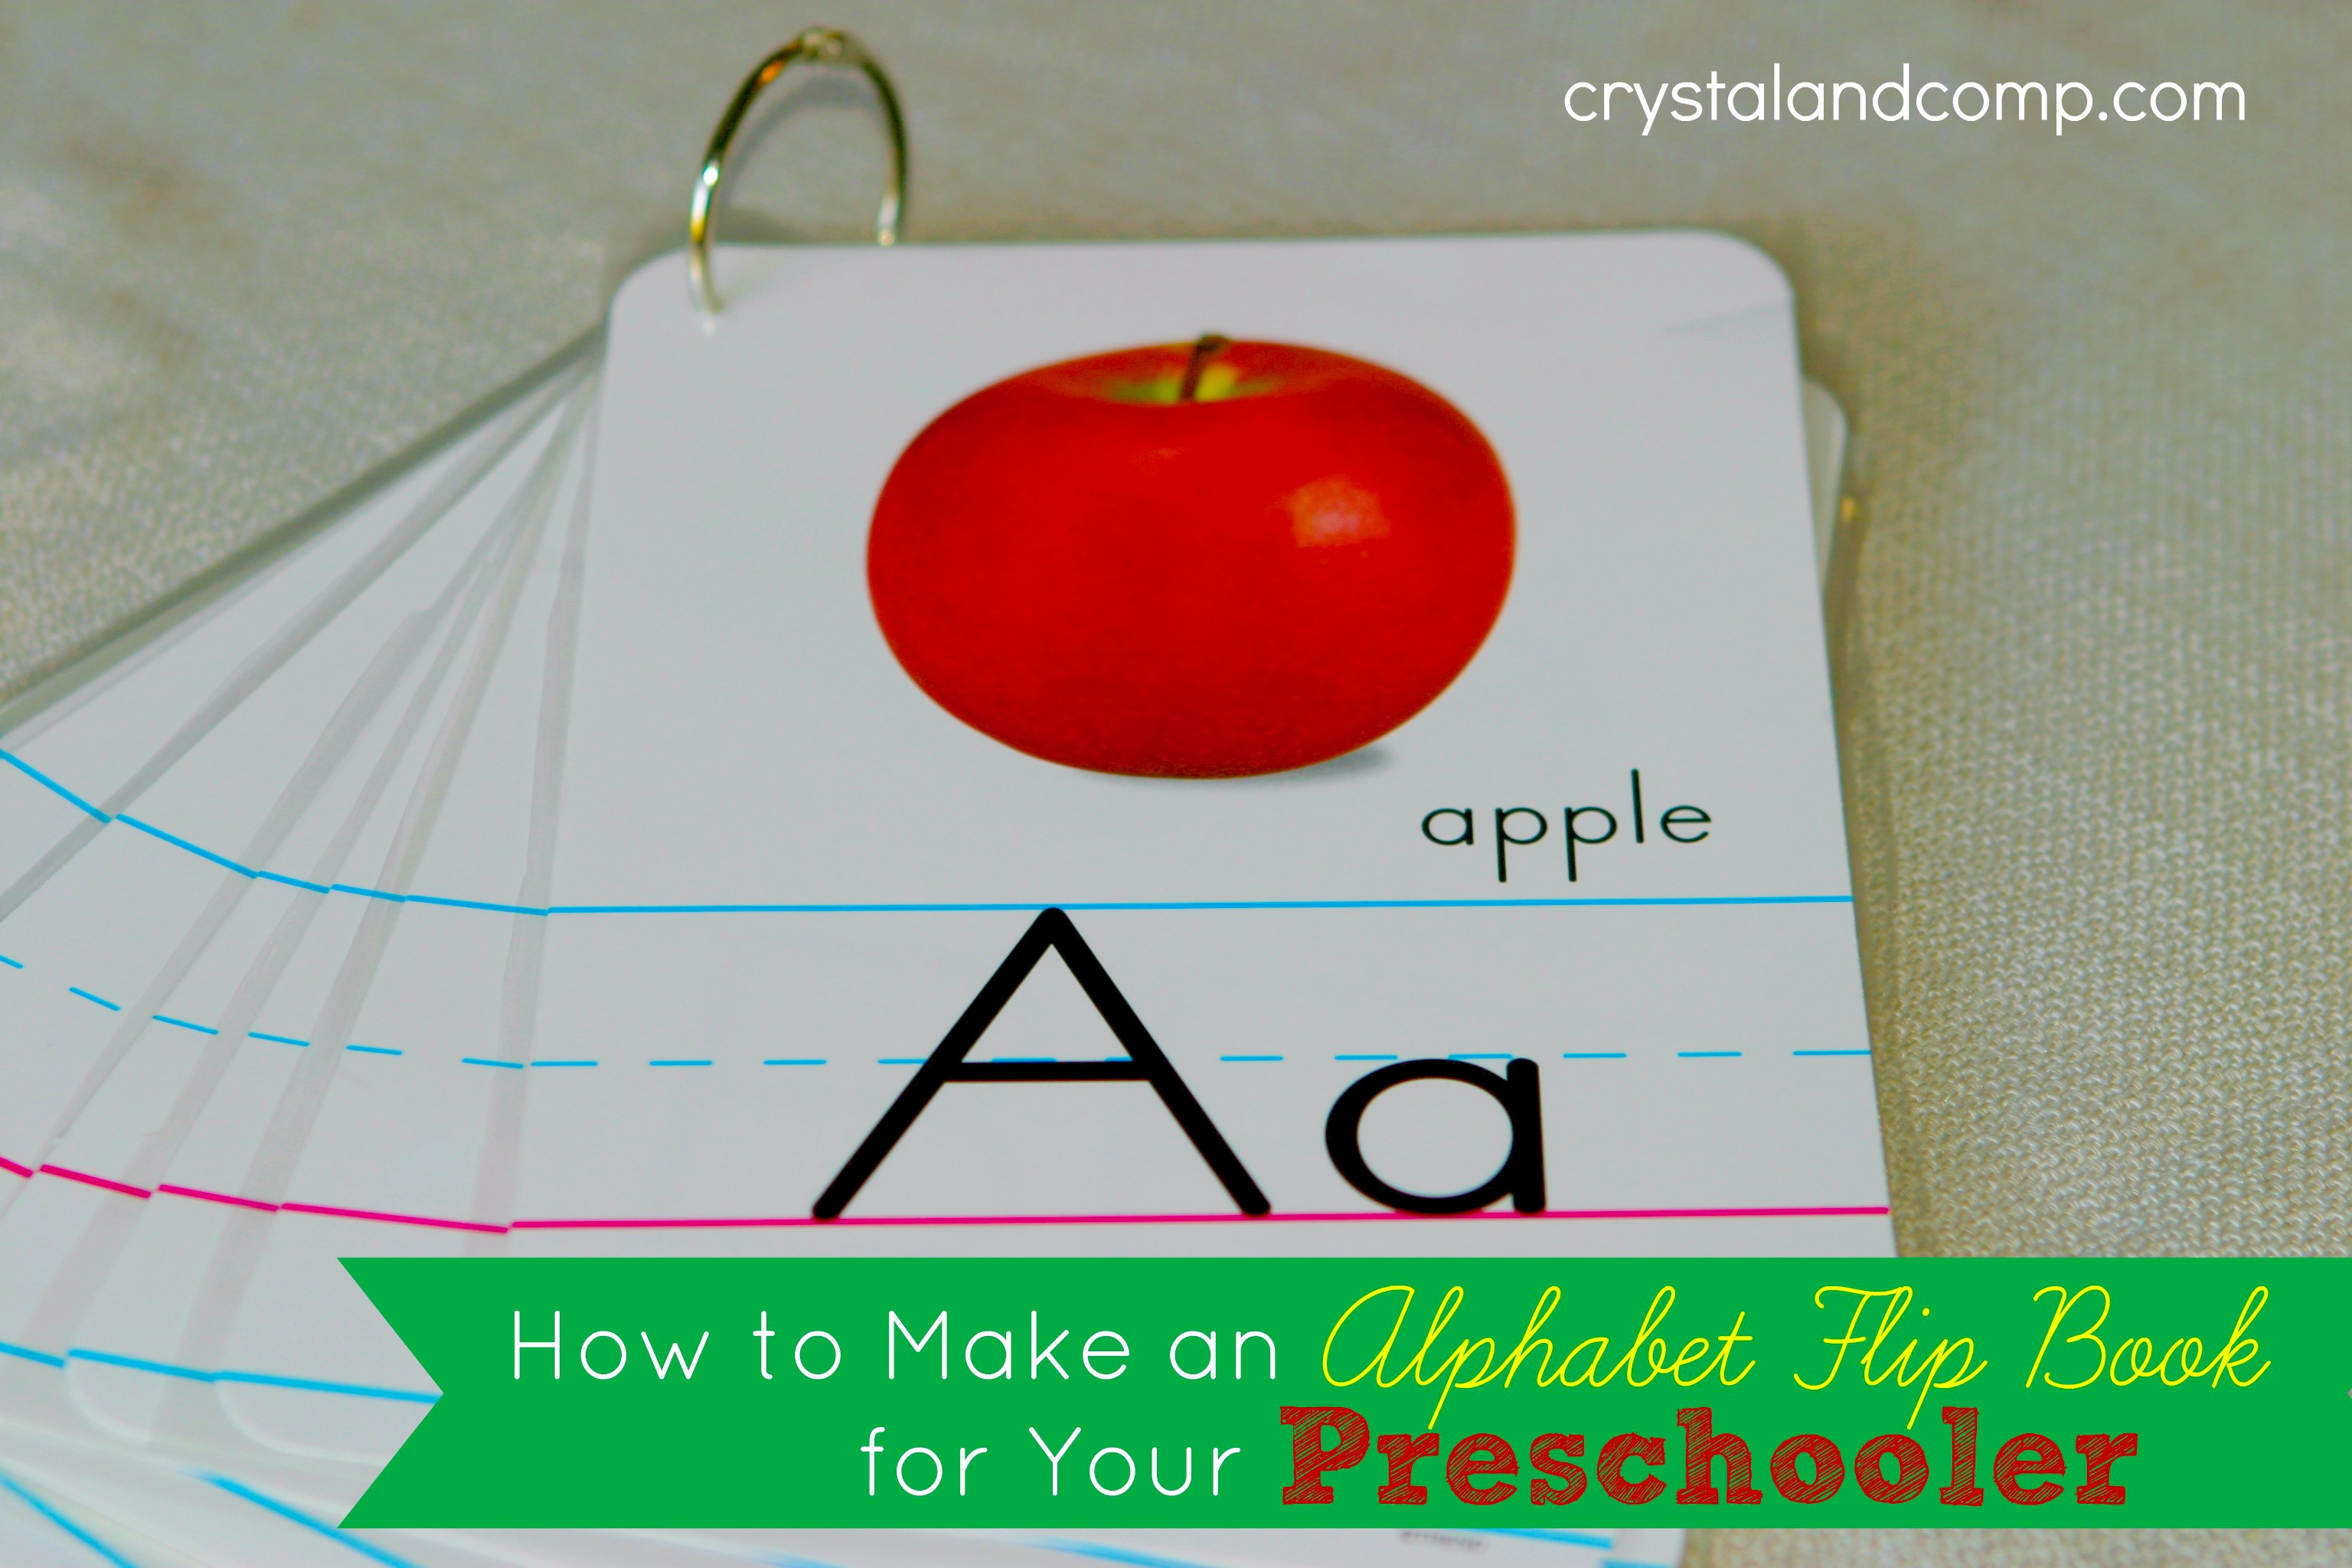 photo about Free Printable Alphabet Books named Practice Your Preschooler Their ABCs